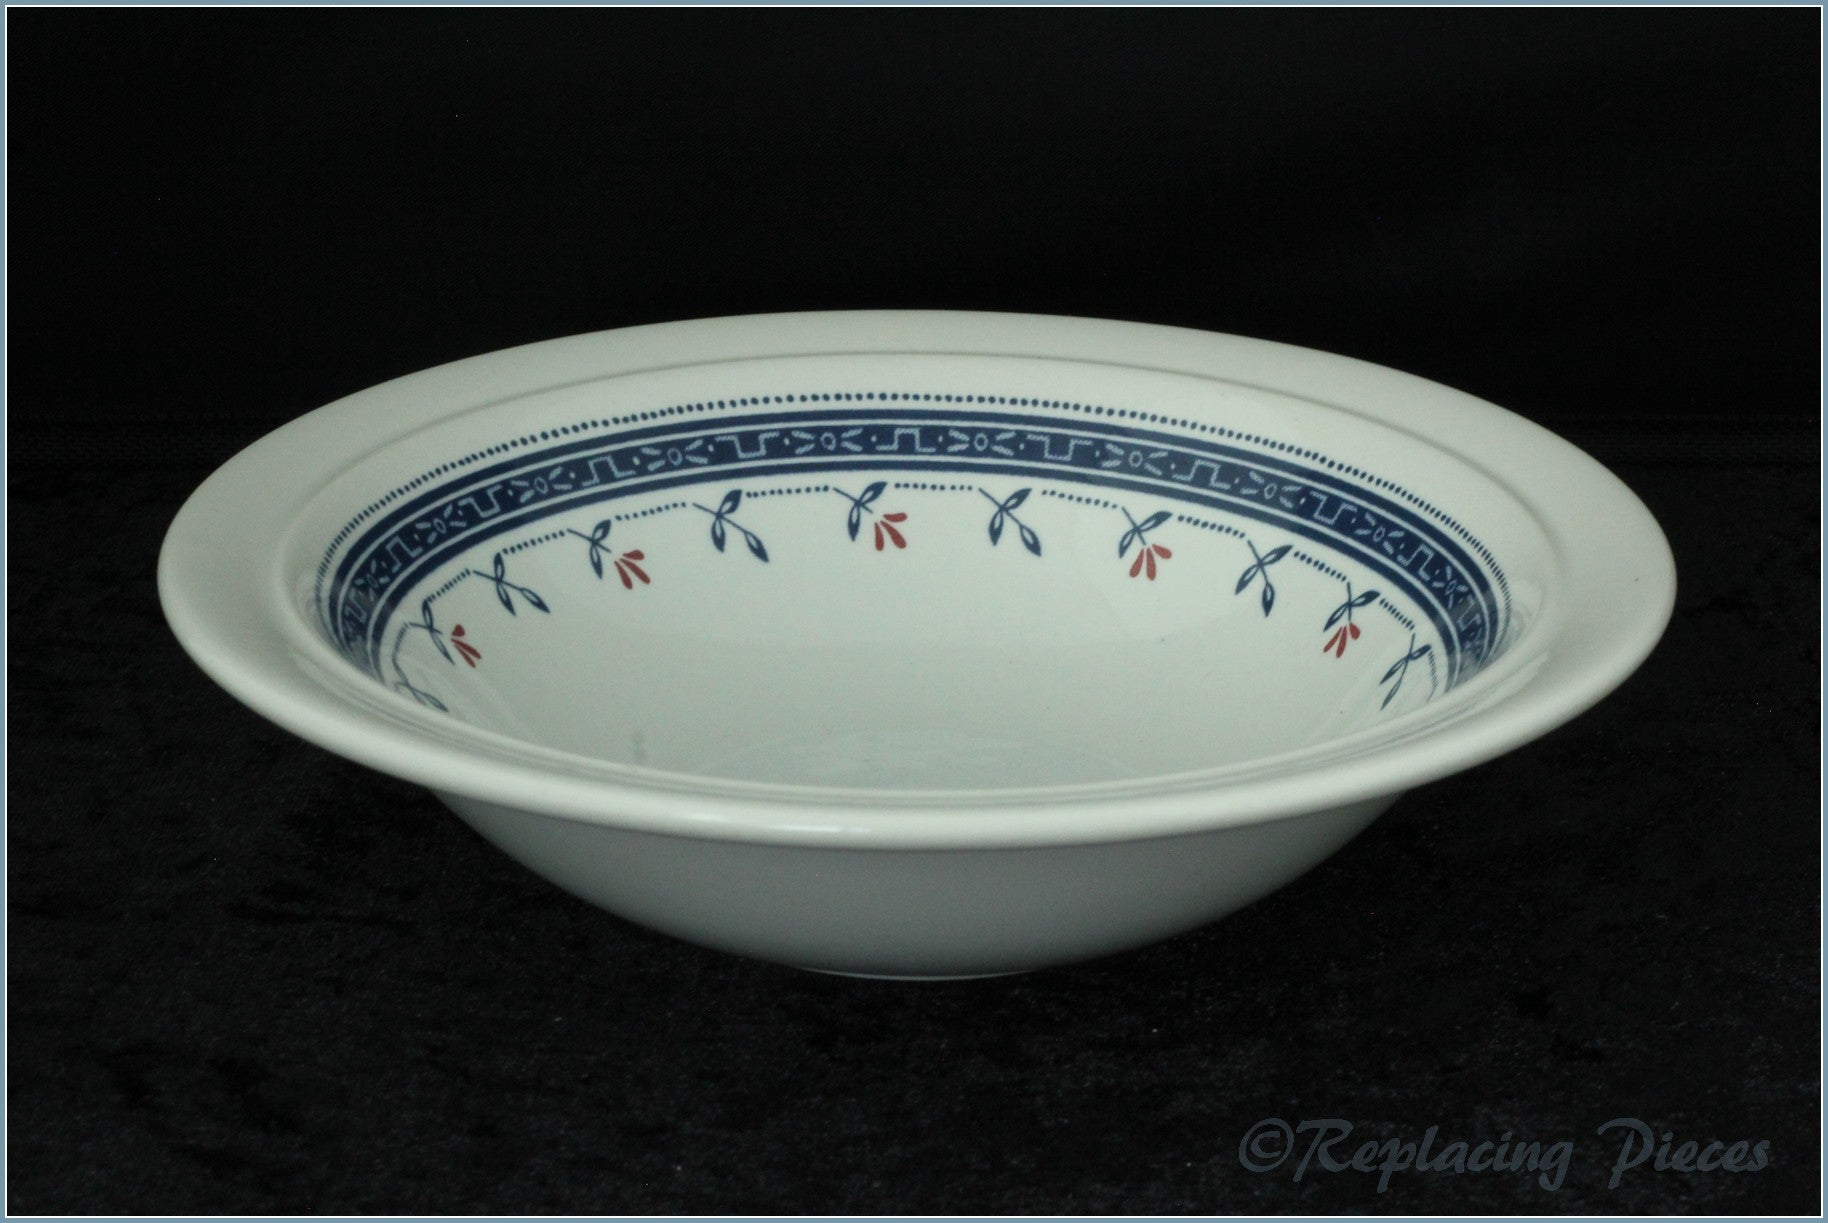 Staffordshire - Unknown 1 - Cereal Bowl